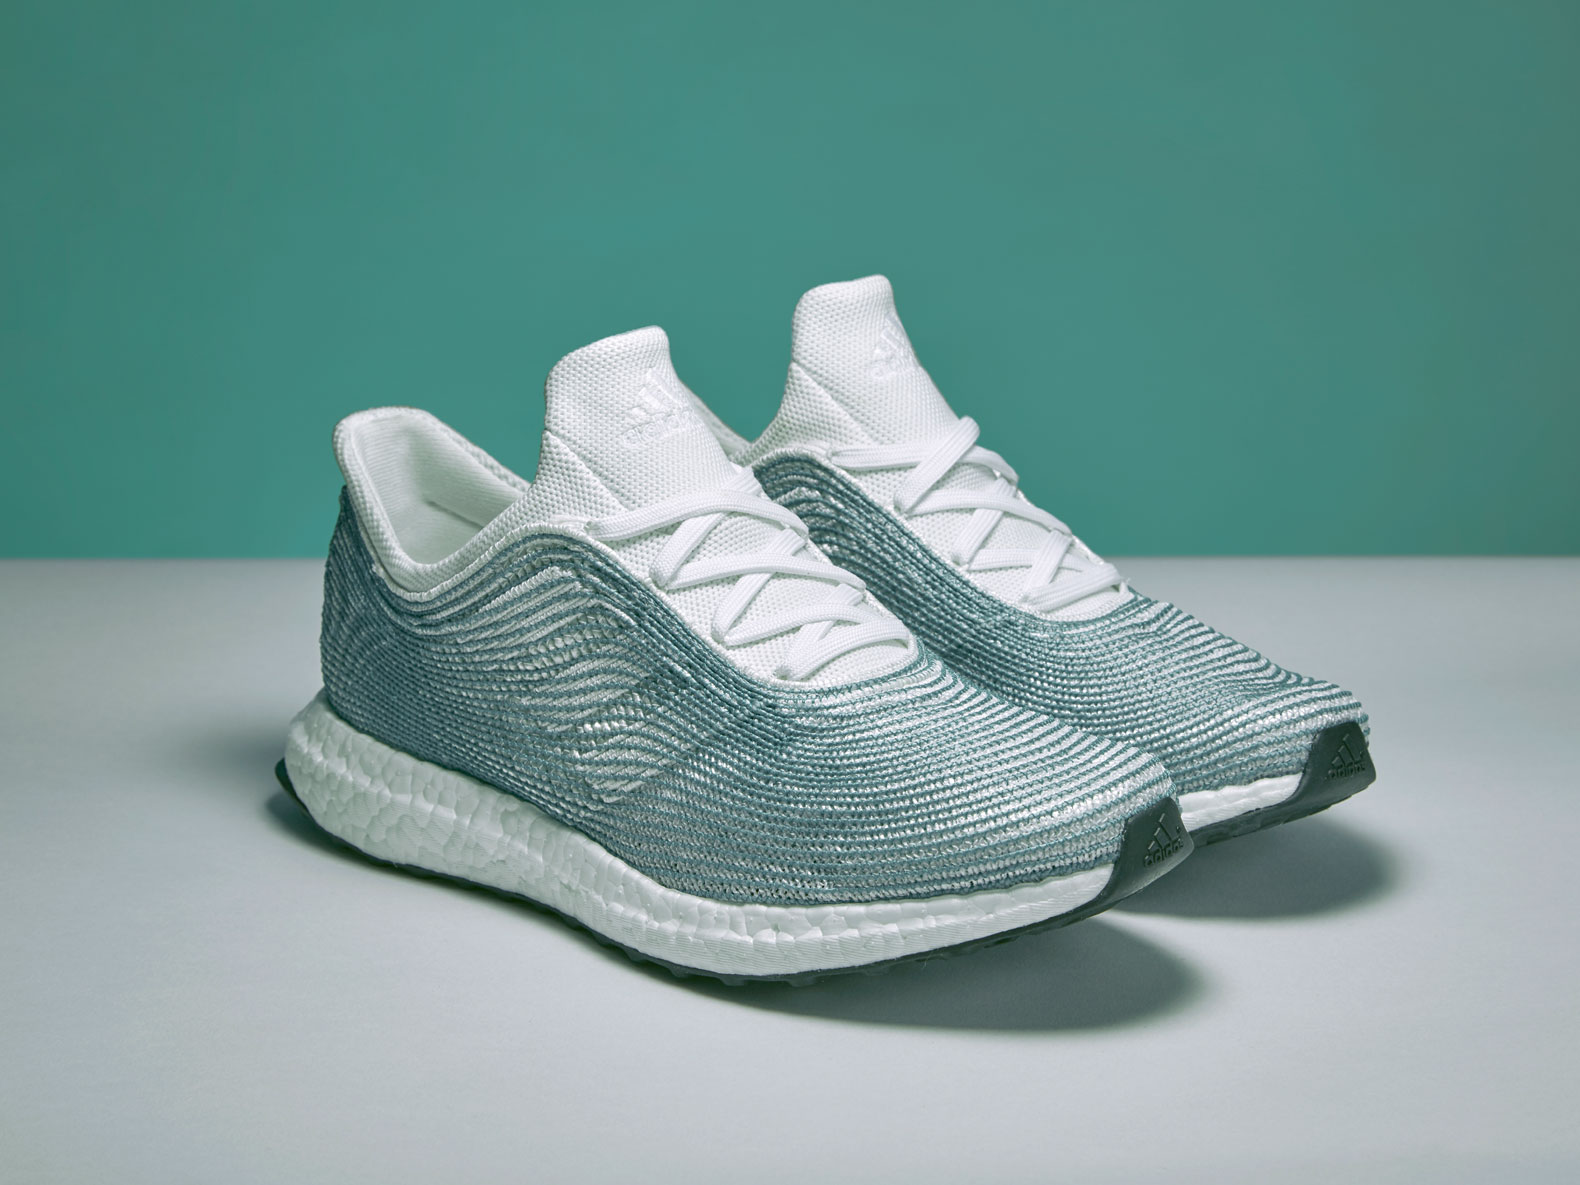 Bazsux: Adidas x Parley host giveaway for 3D-printed